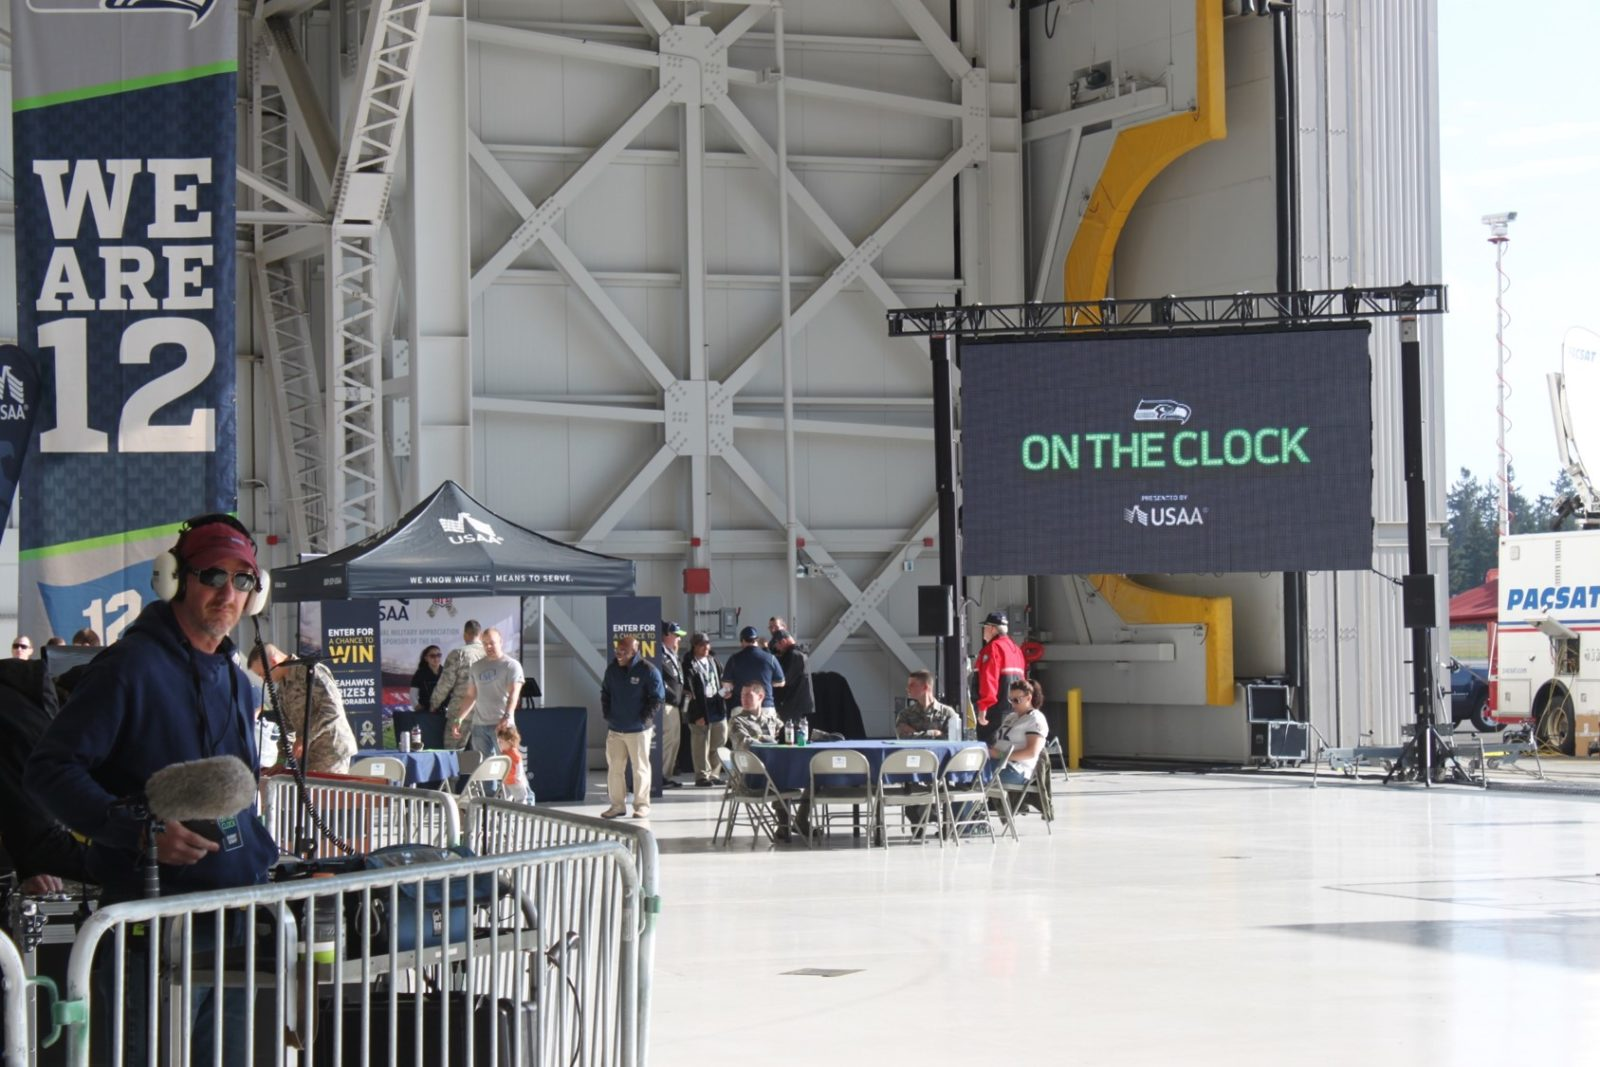 Seattle Seahawks fan event in an aircraft hangar